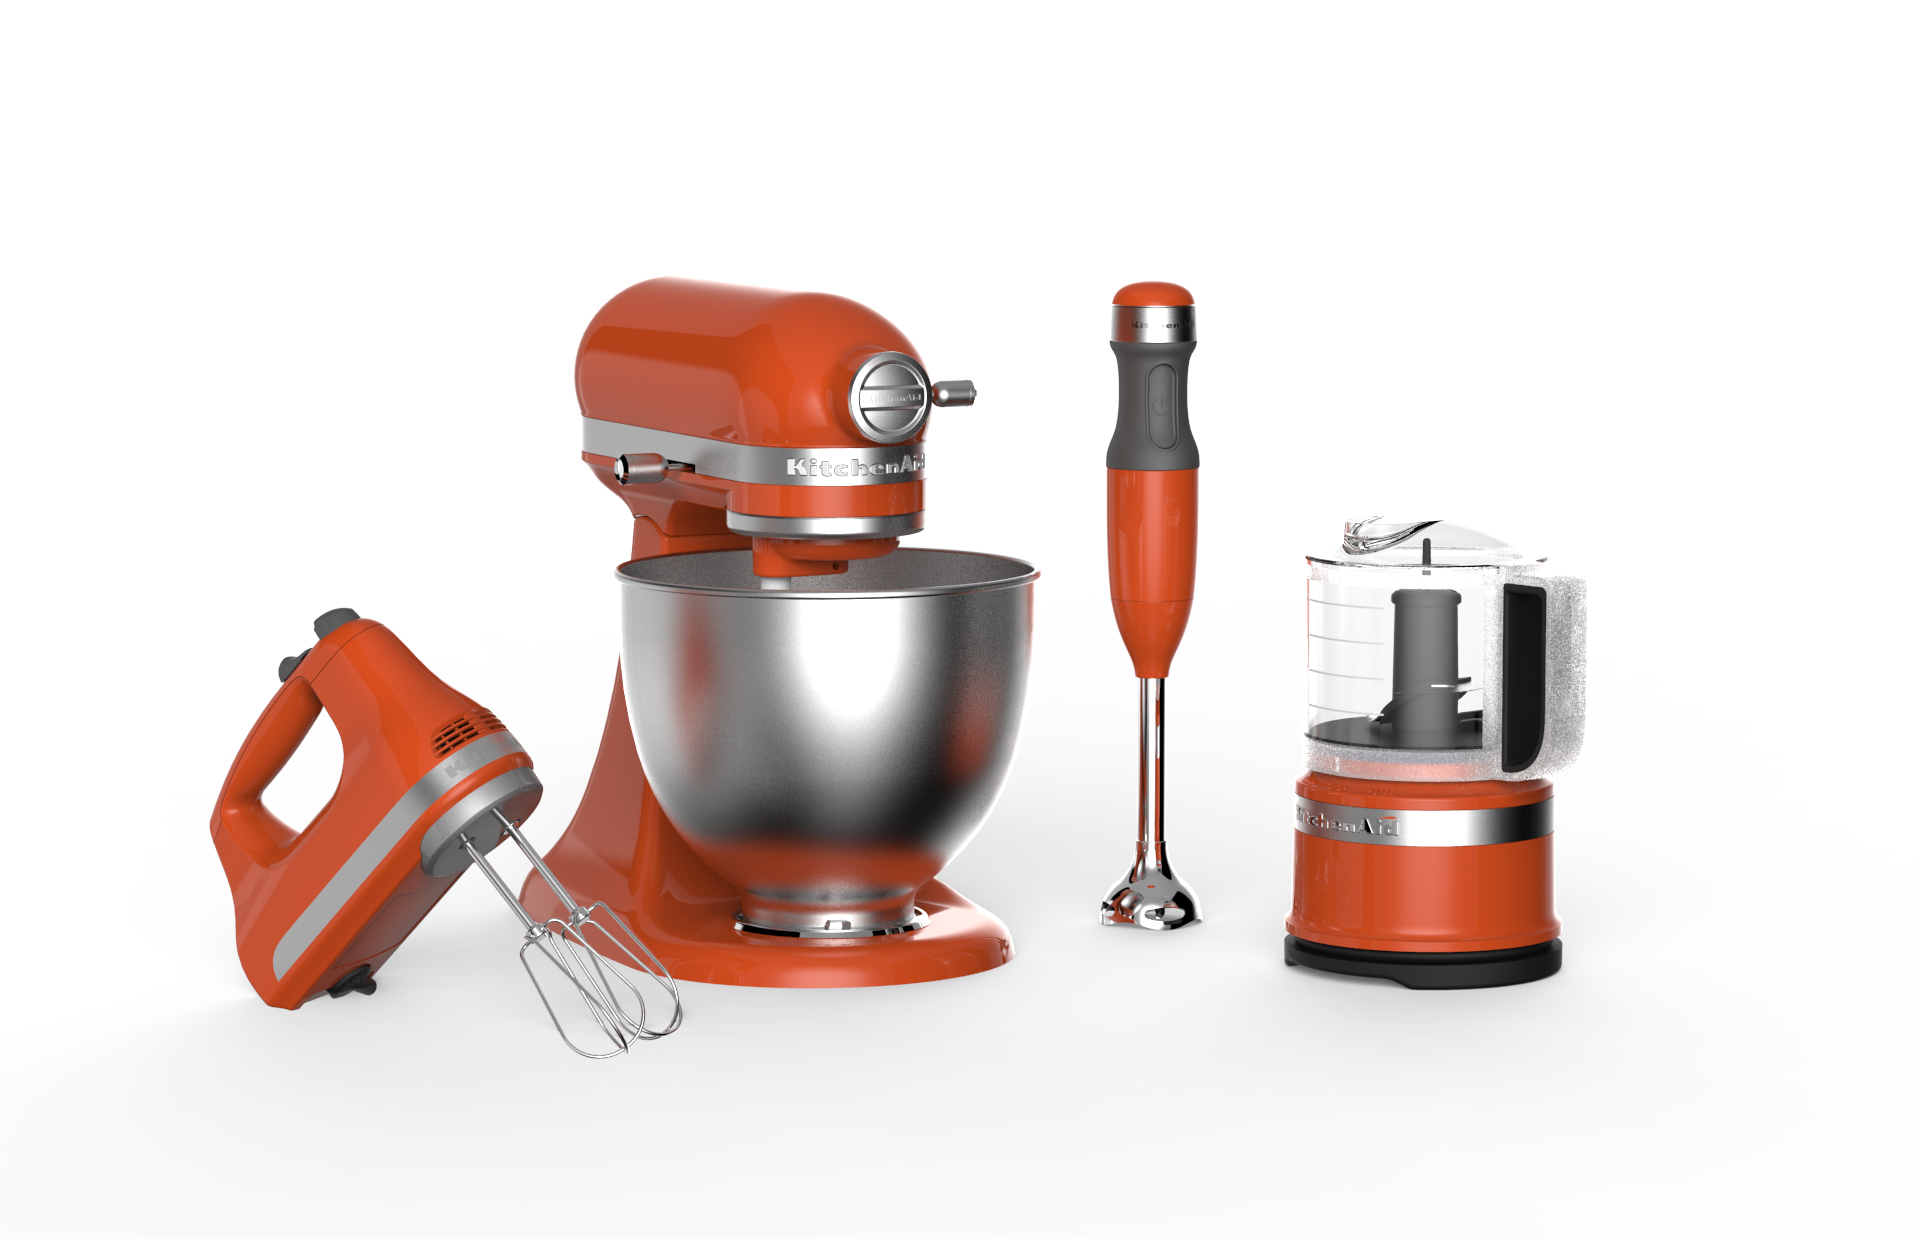 Charmant KITCHENAID UNVEILS FRESH NEW COLORS AT HOUSEWARES SHOW